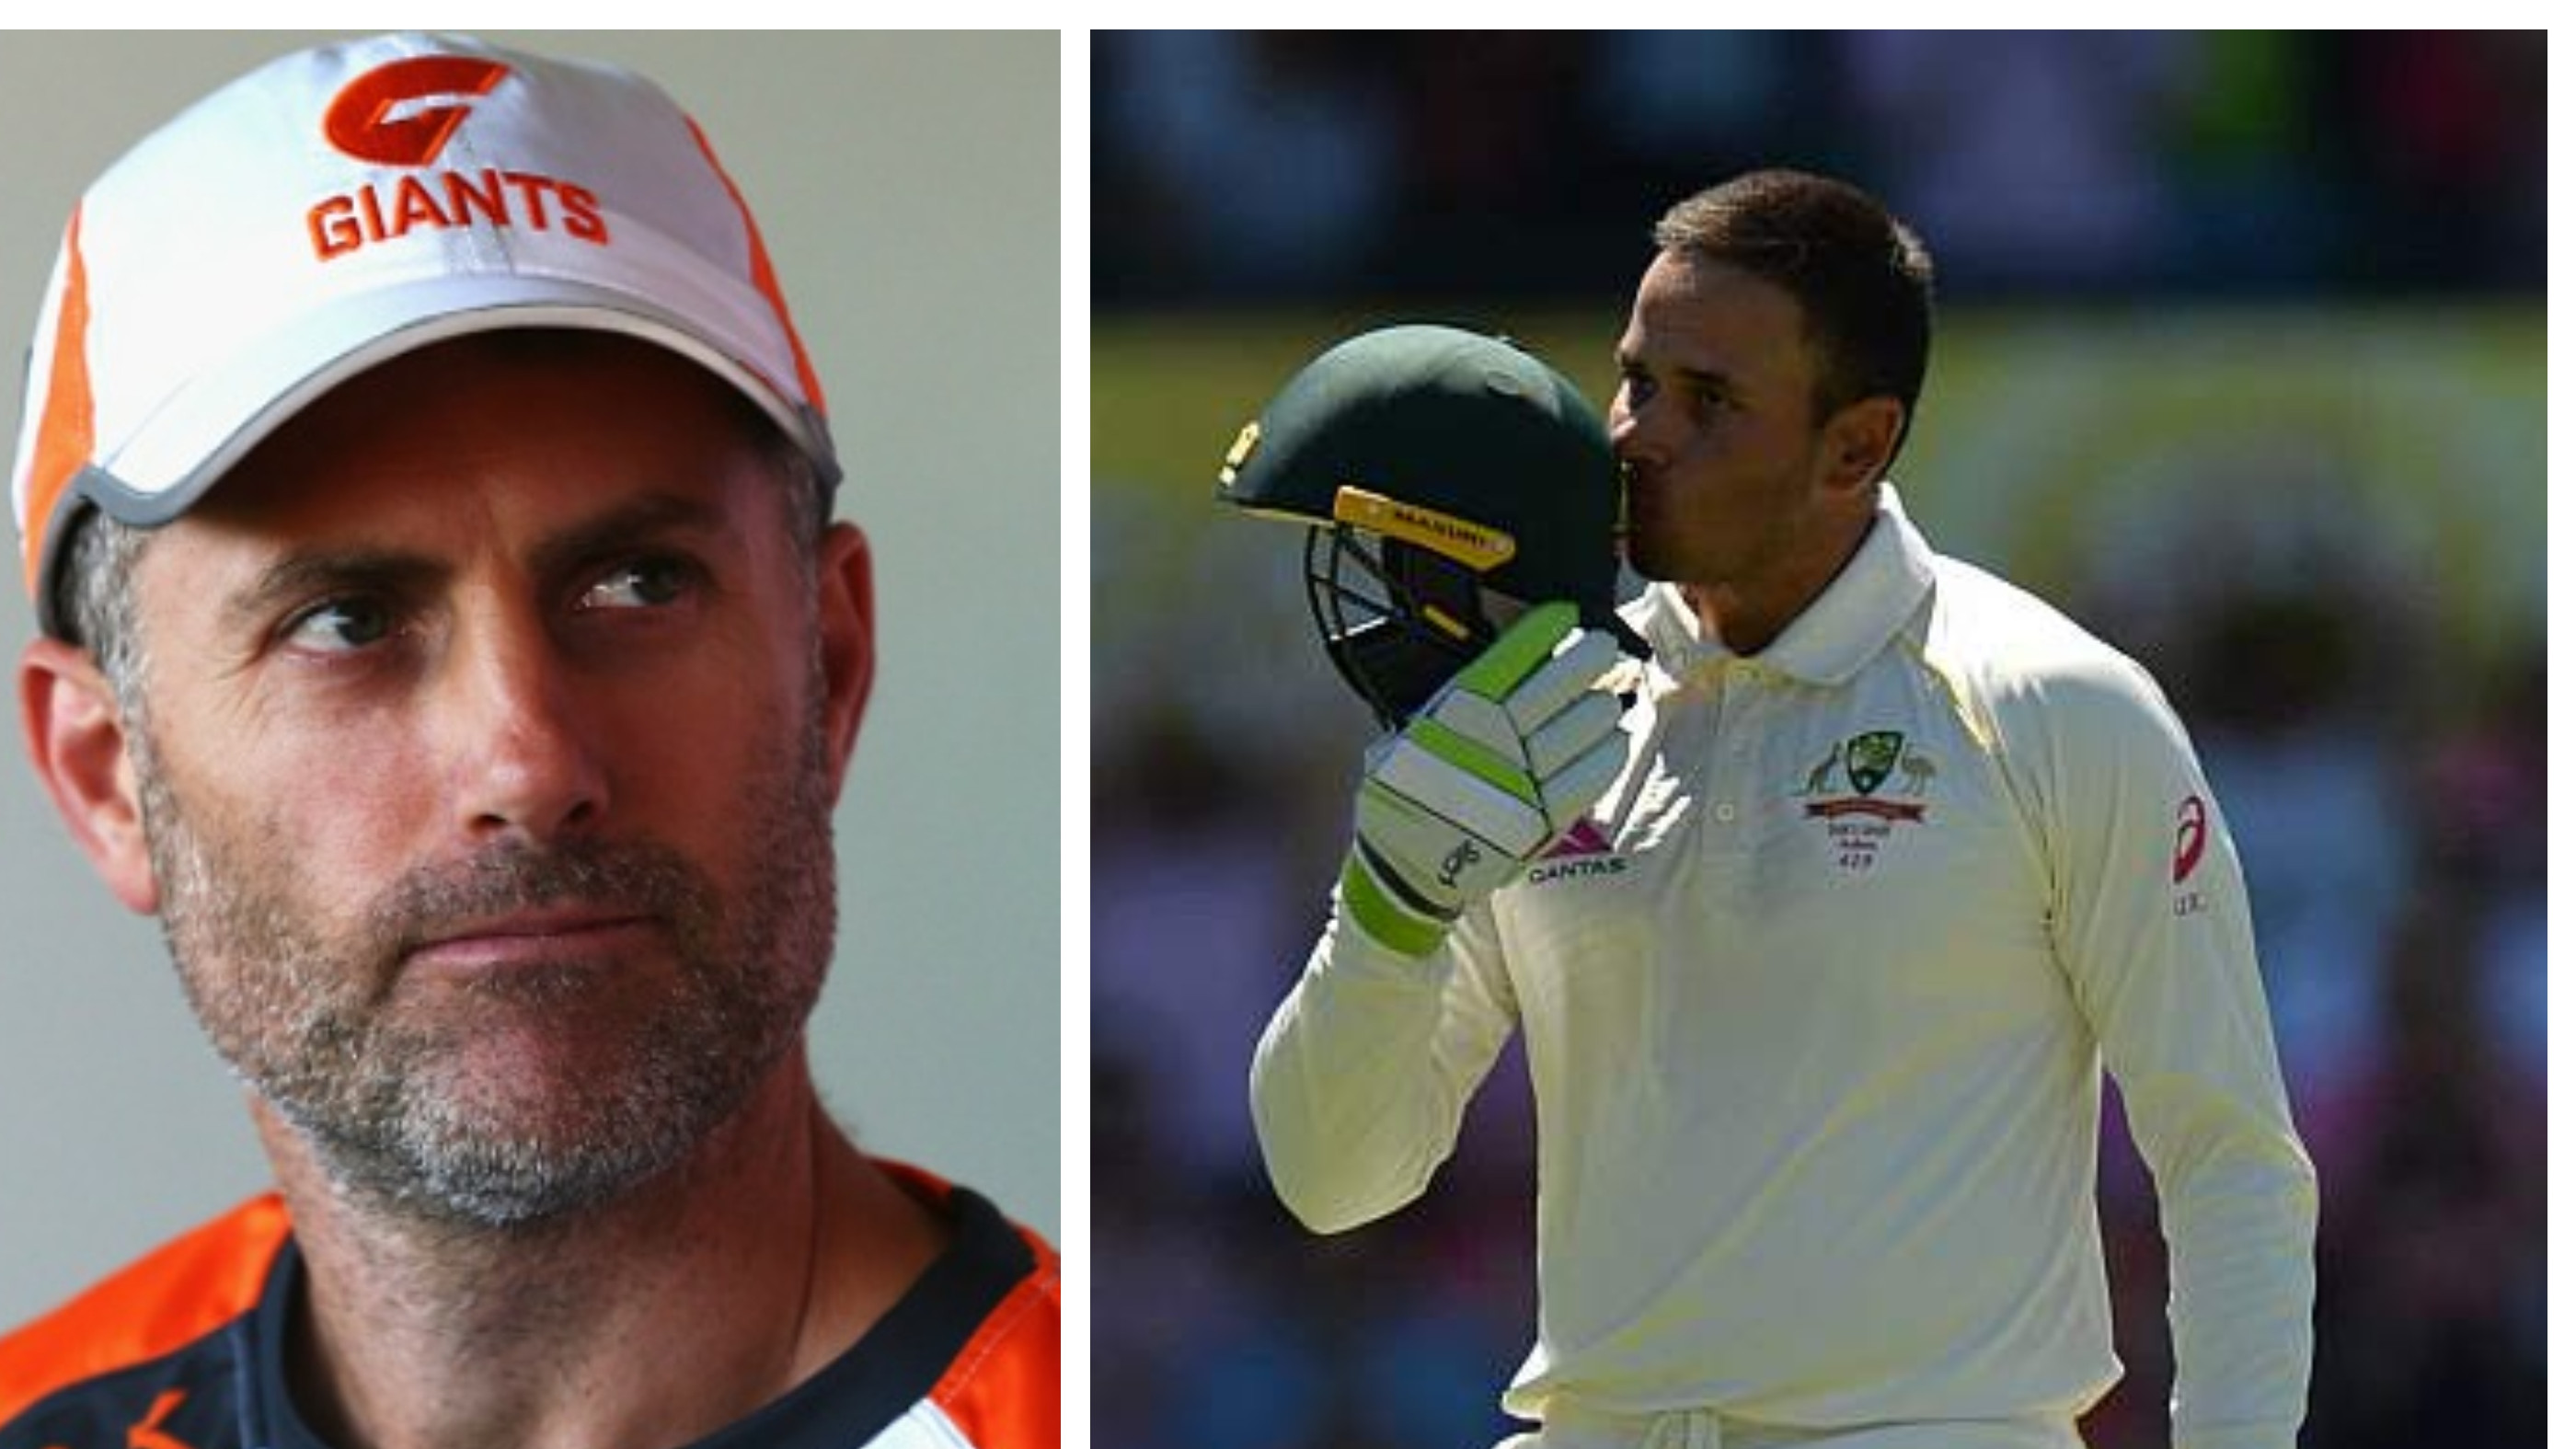 Usman Khawaja should open for Australia in Test Cricket, opines Simon Katich